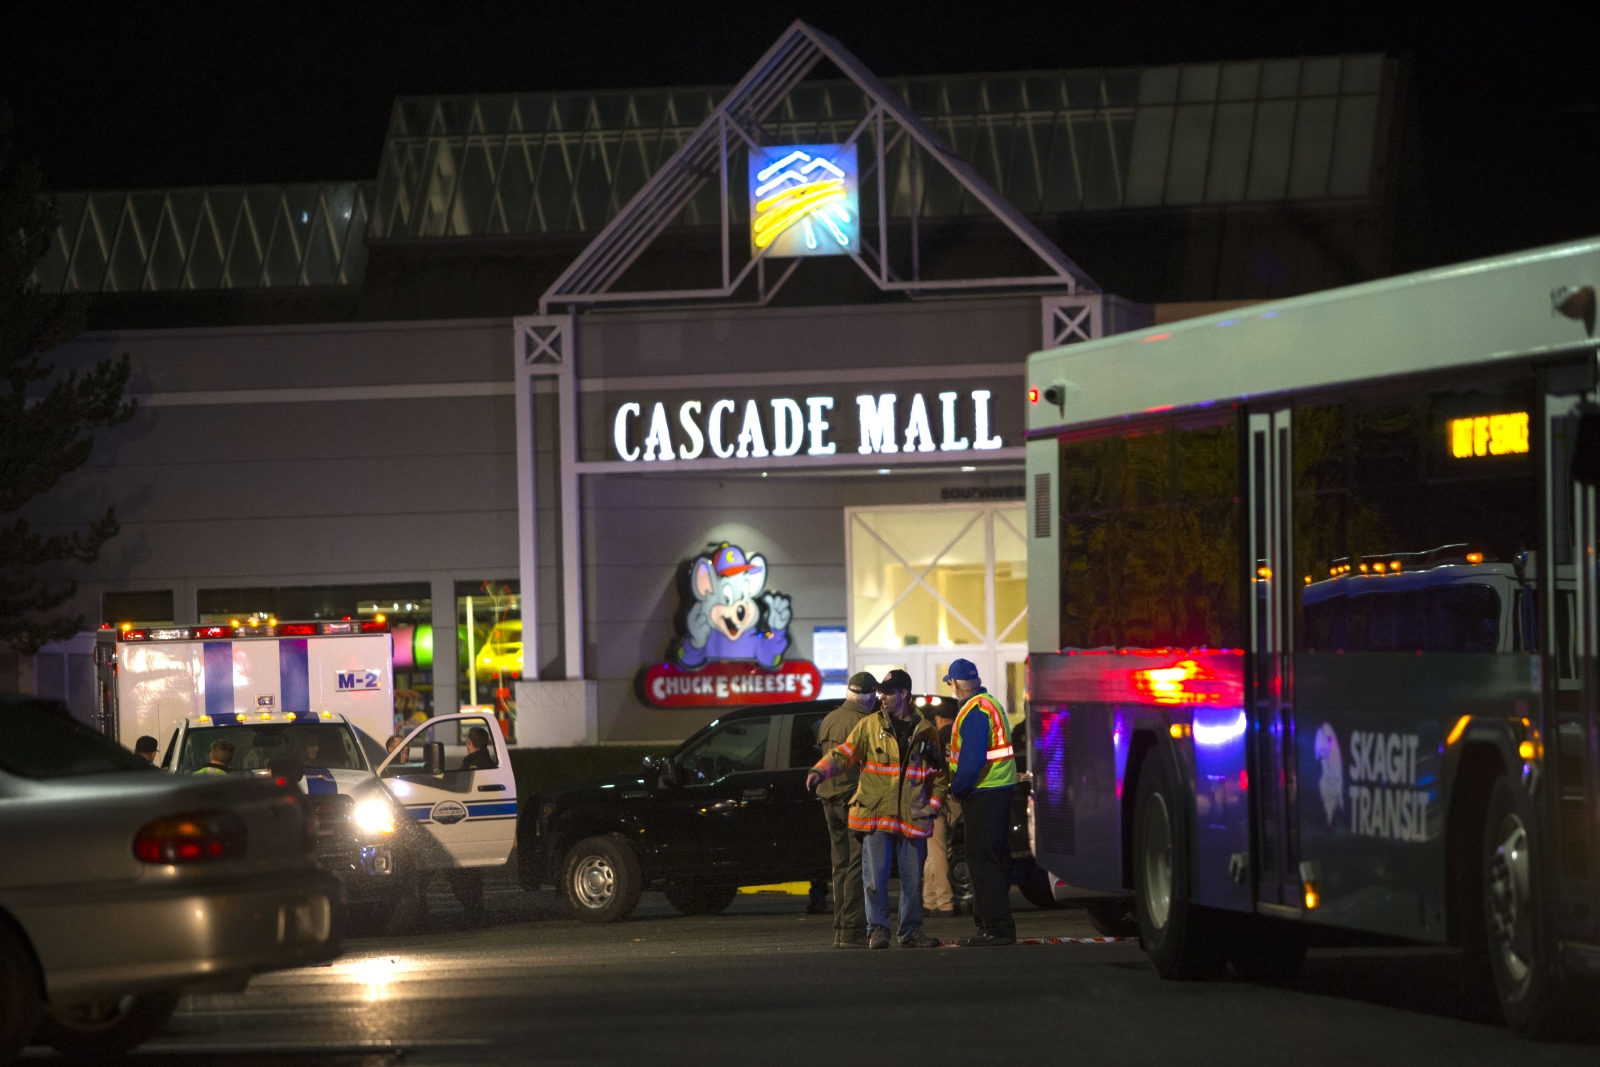 Mall victims include teen, probation officer, Boeing worker